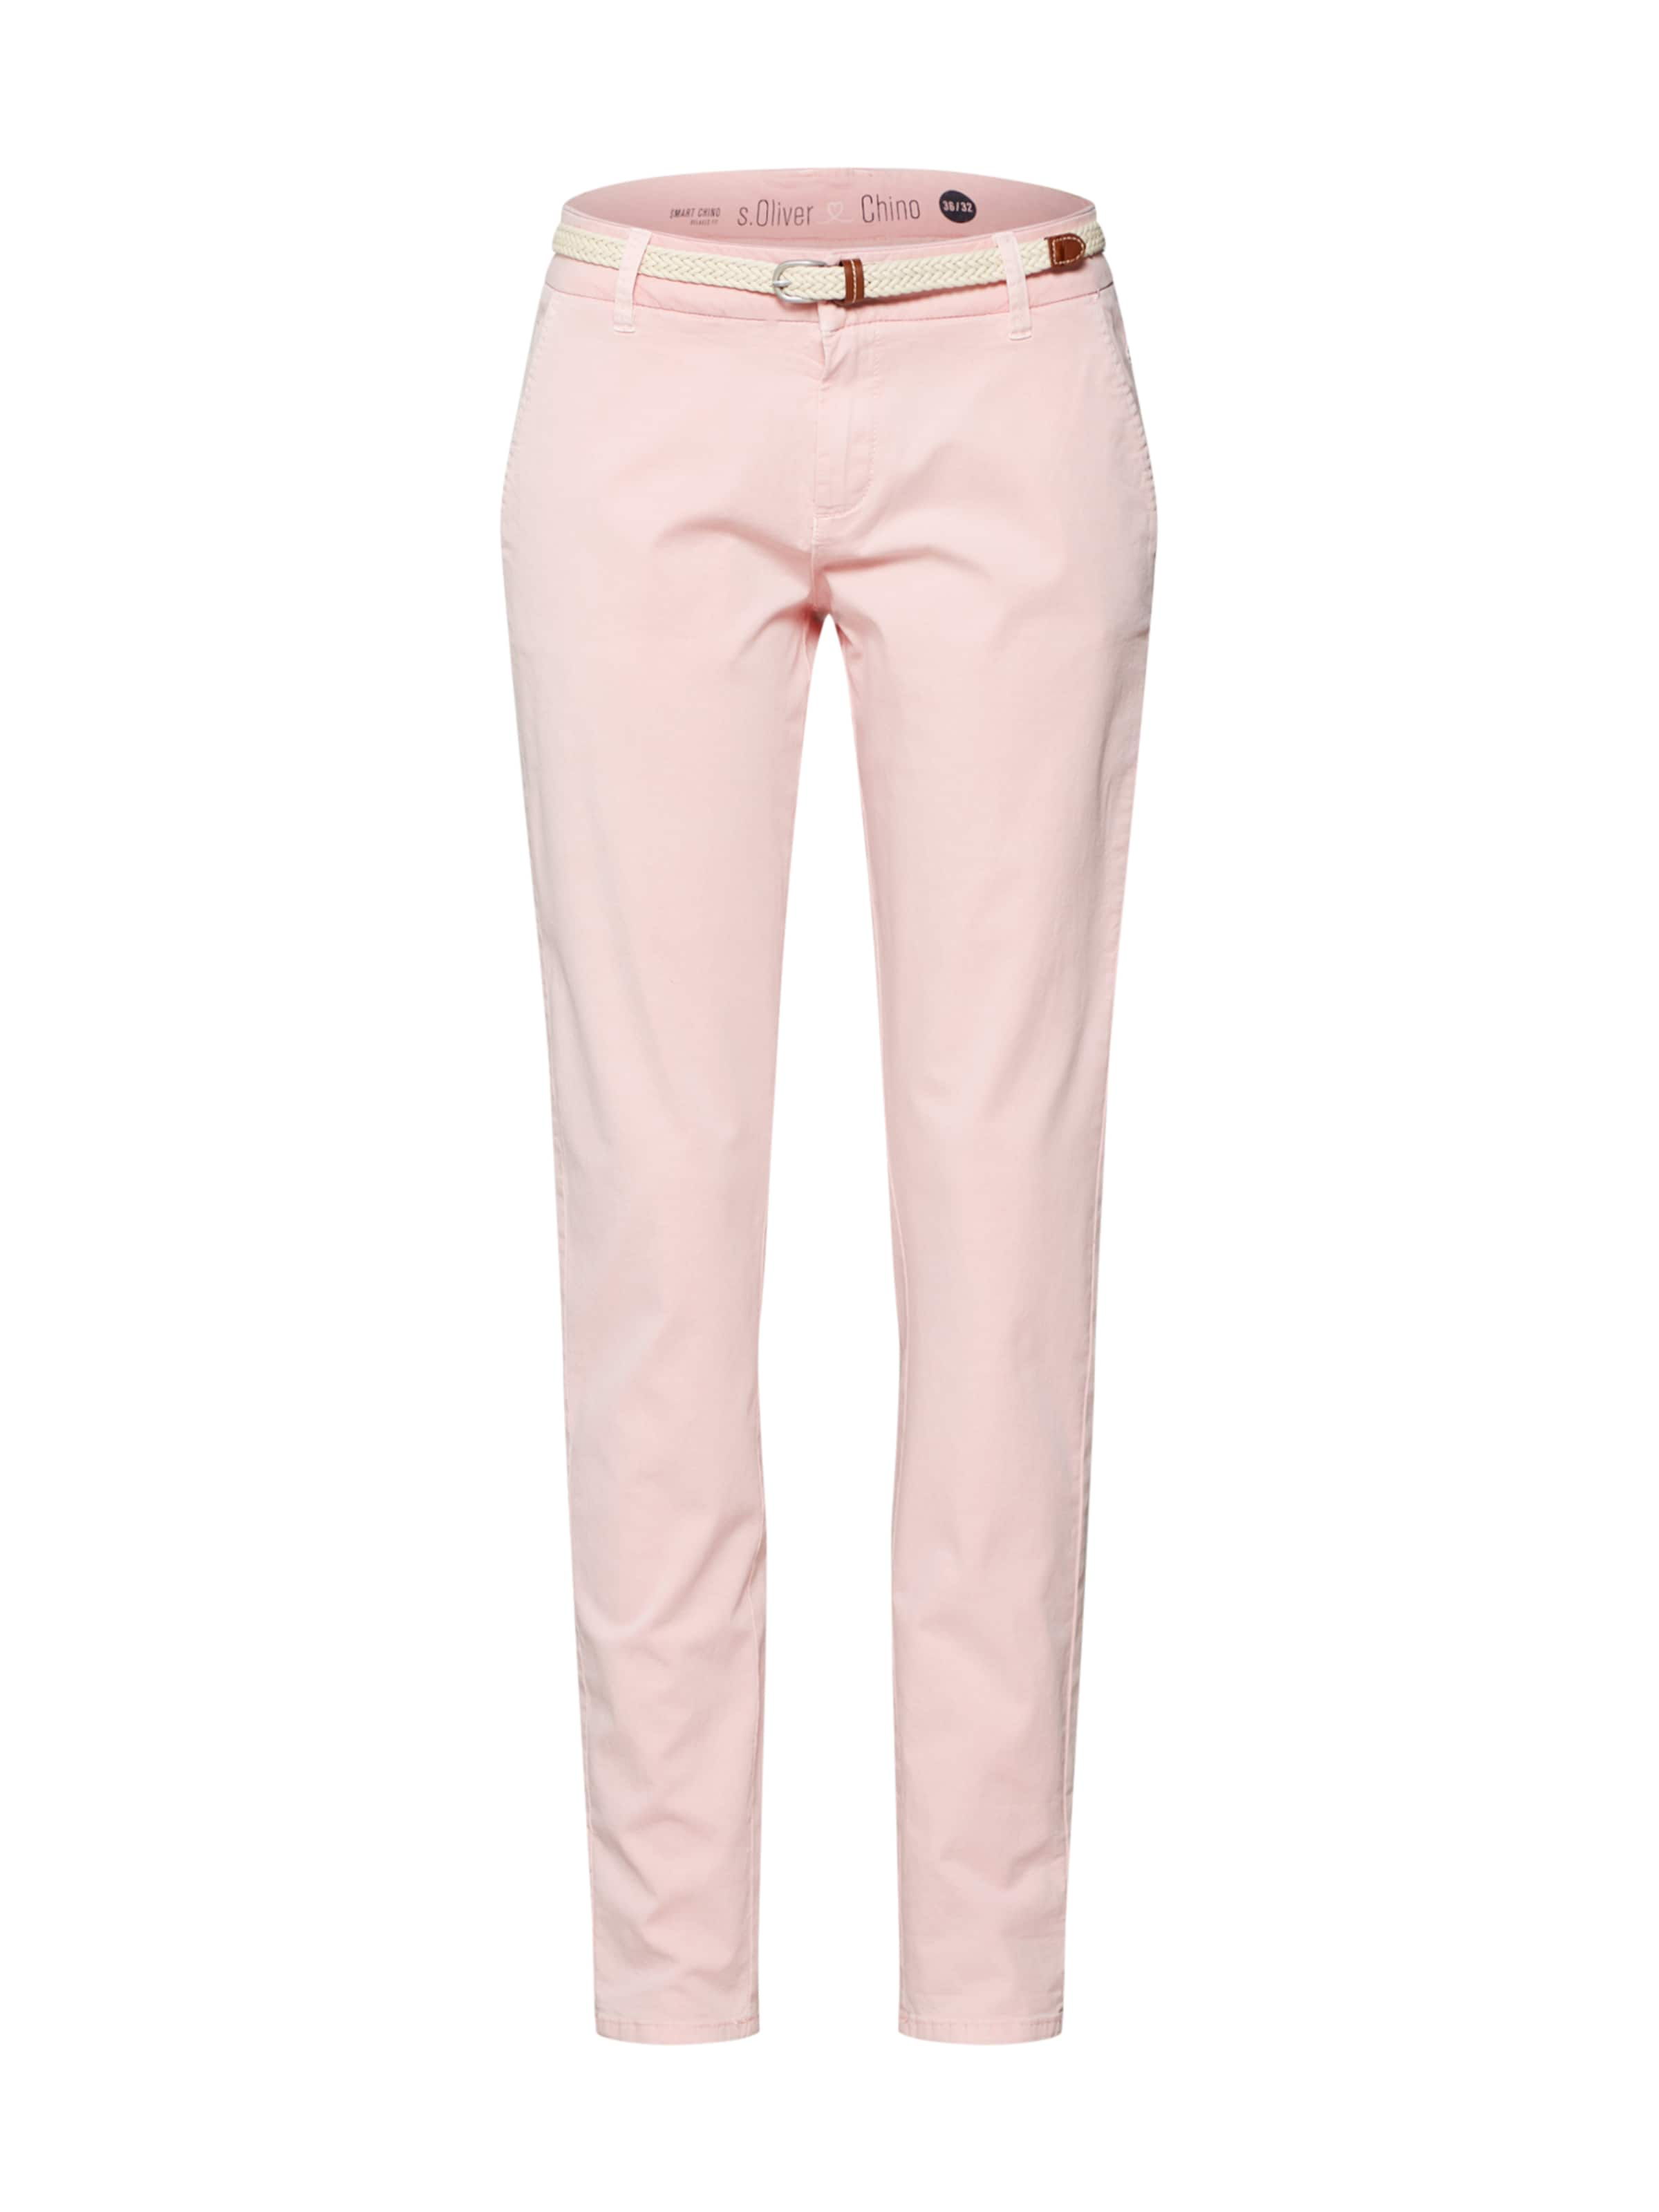 Altrosa oliver Hose In Chino' 'smart S zGjqULpVMS